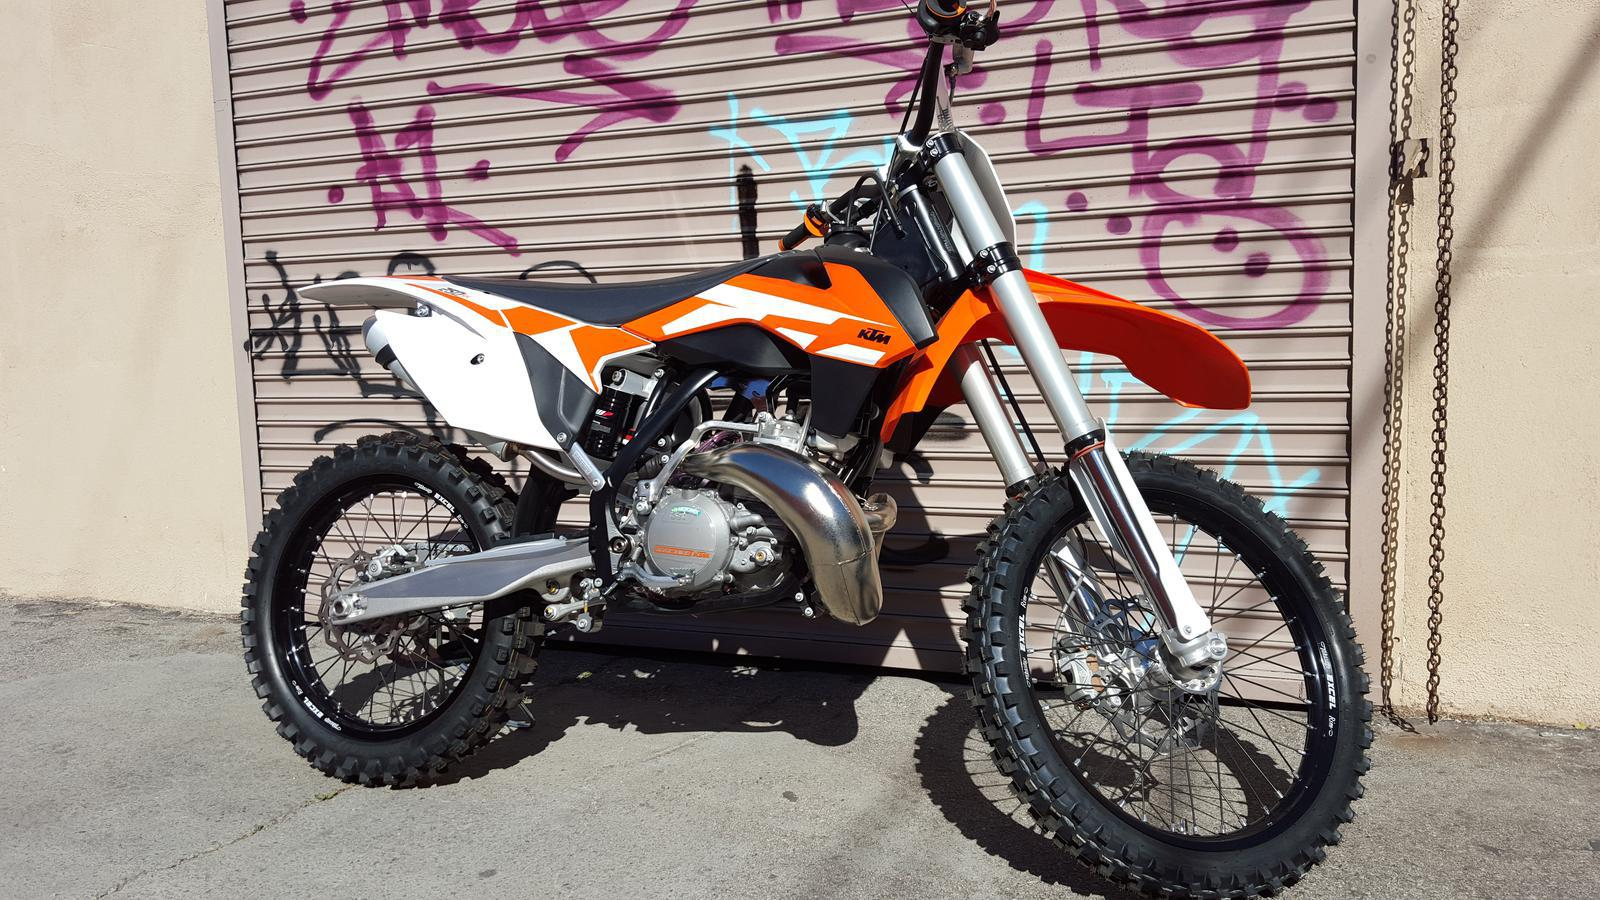 2016 ktm 250 sx for sale in los angeles, ca | beverly hills